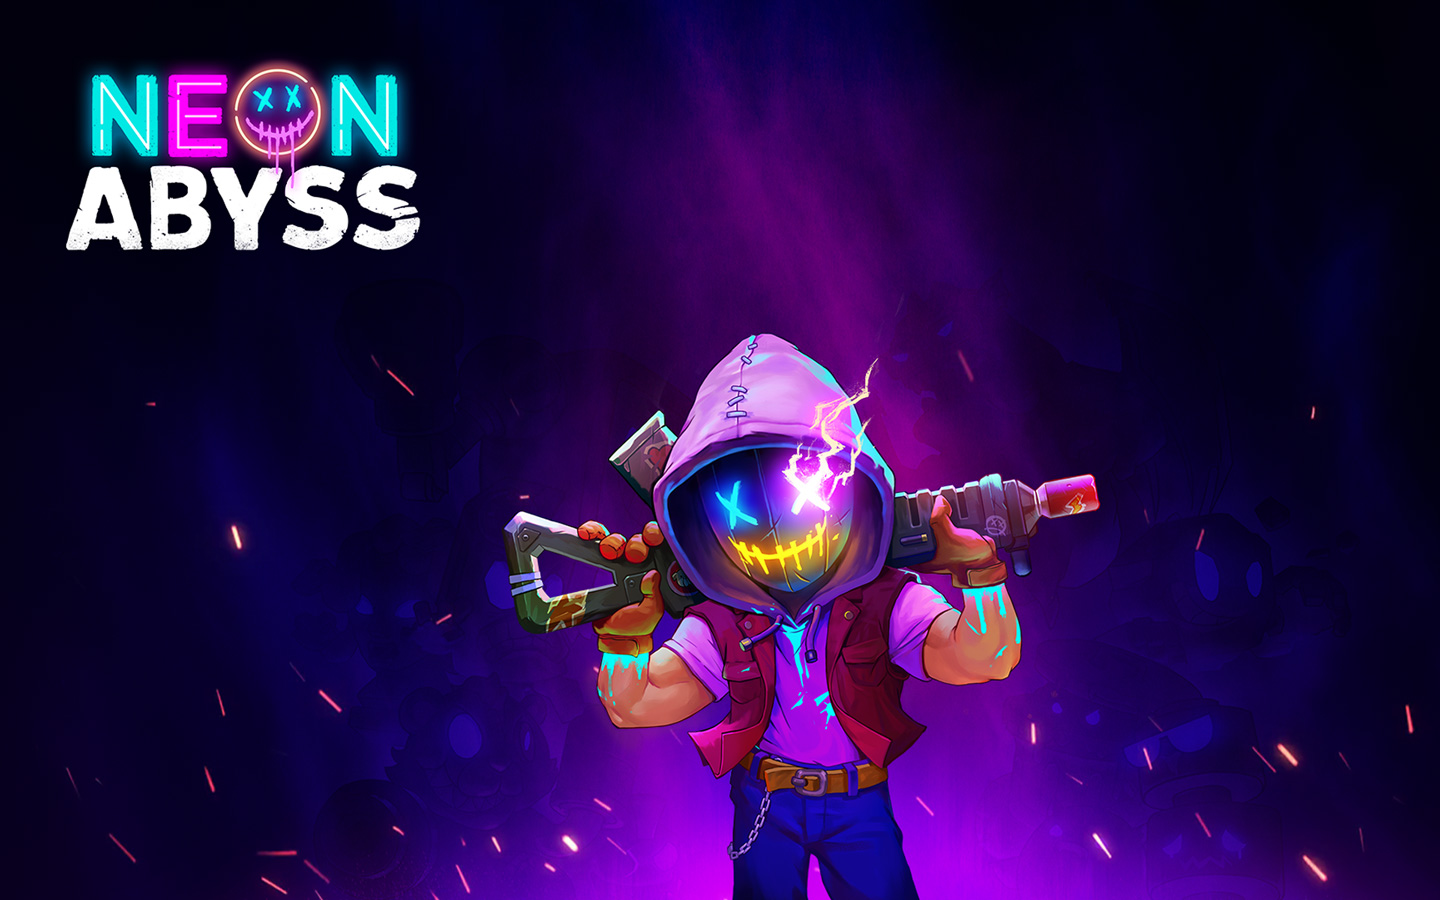 Neon Abyss Wallpaper in 1440x900